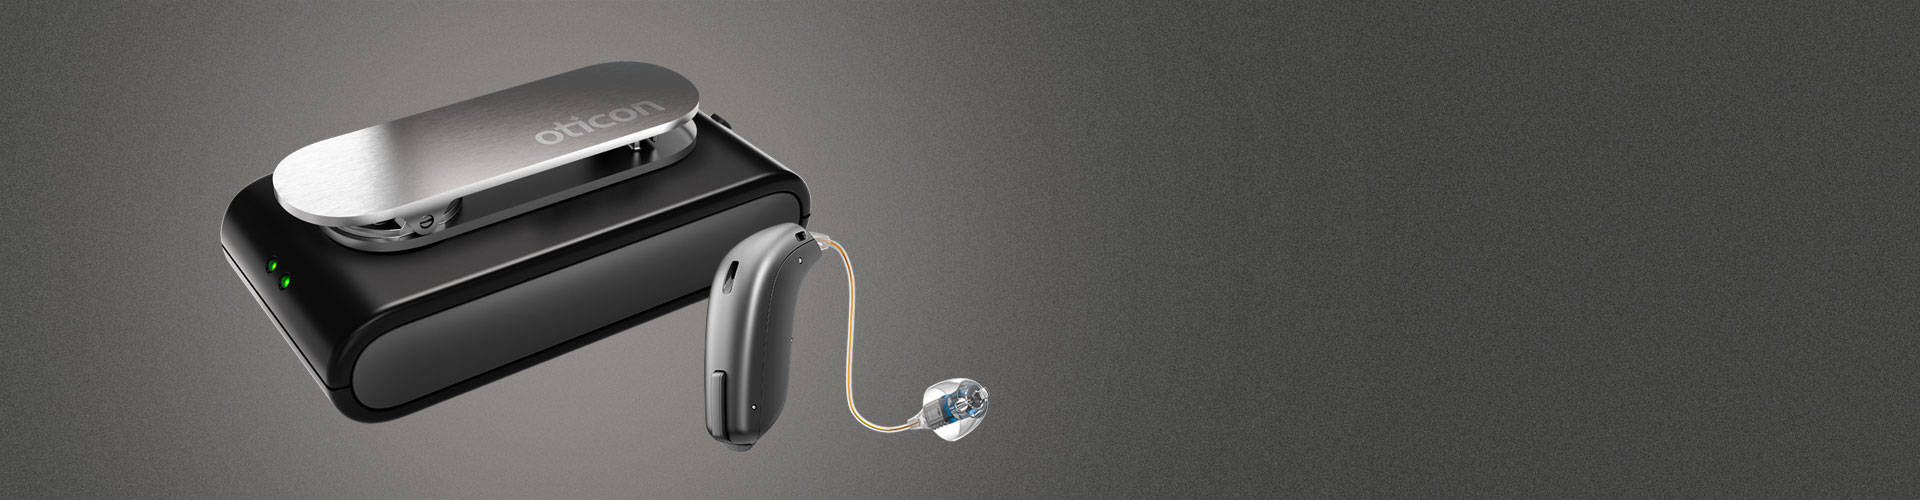 ConnectClip and Oticon hearing aid